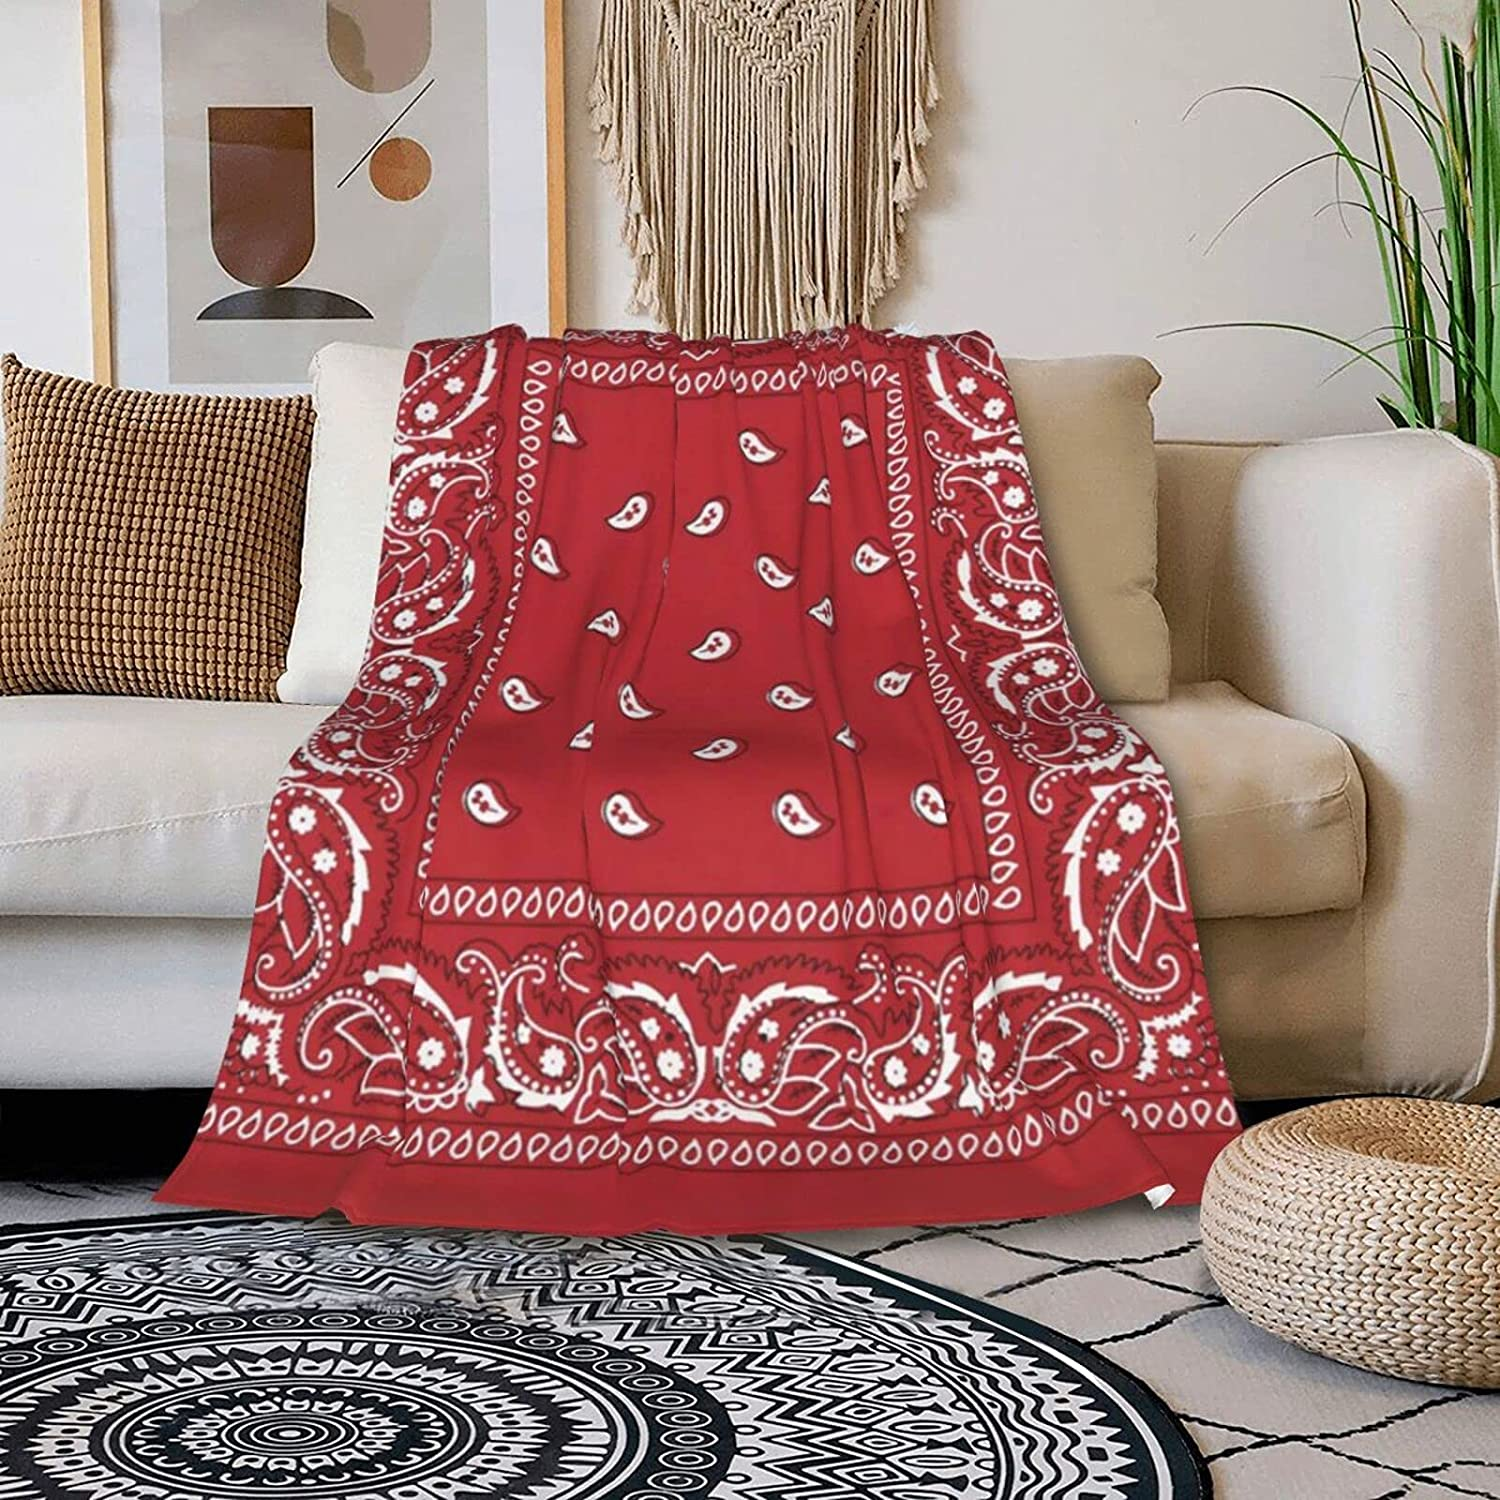 Genuine ONE TO PROMISE Ethnic Pattern of Print Frame Bandana Red Blanket Super sale